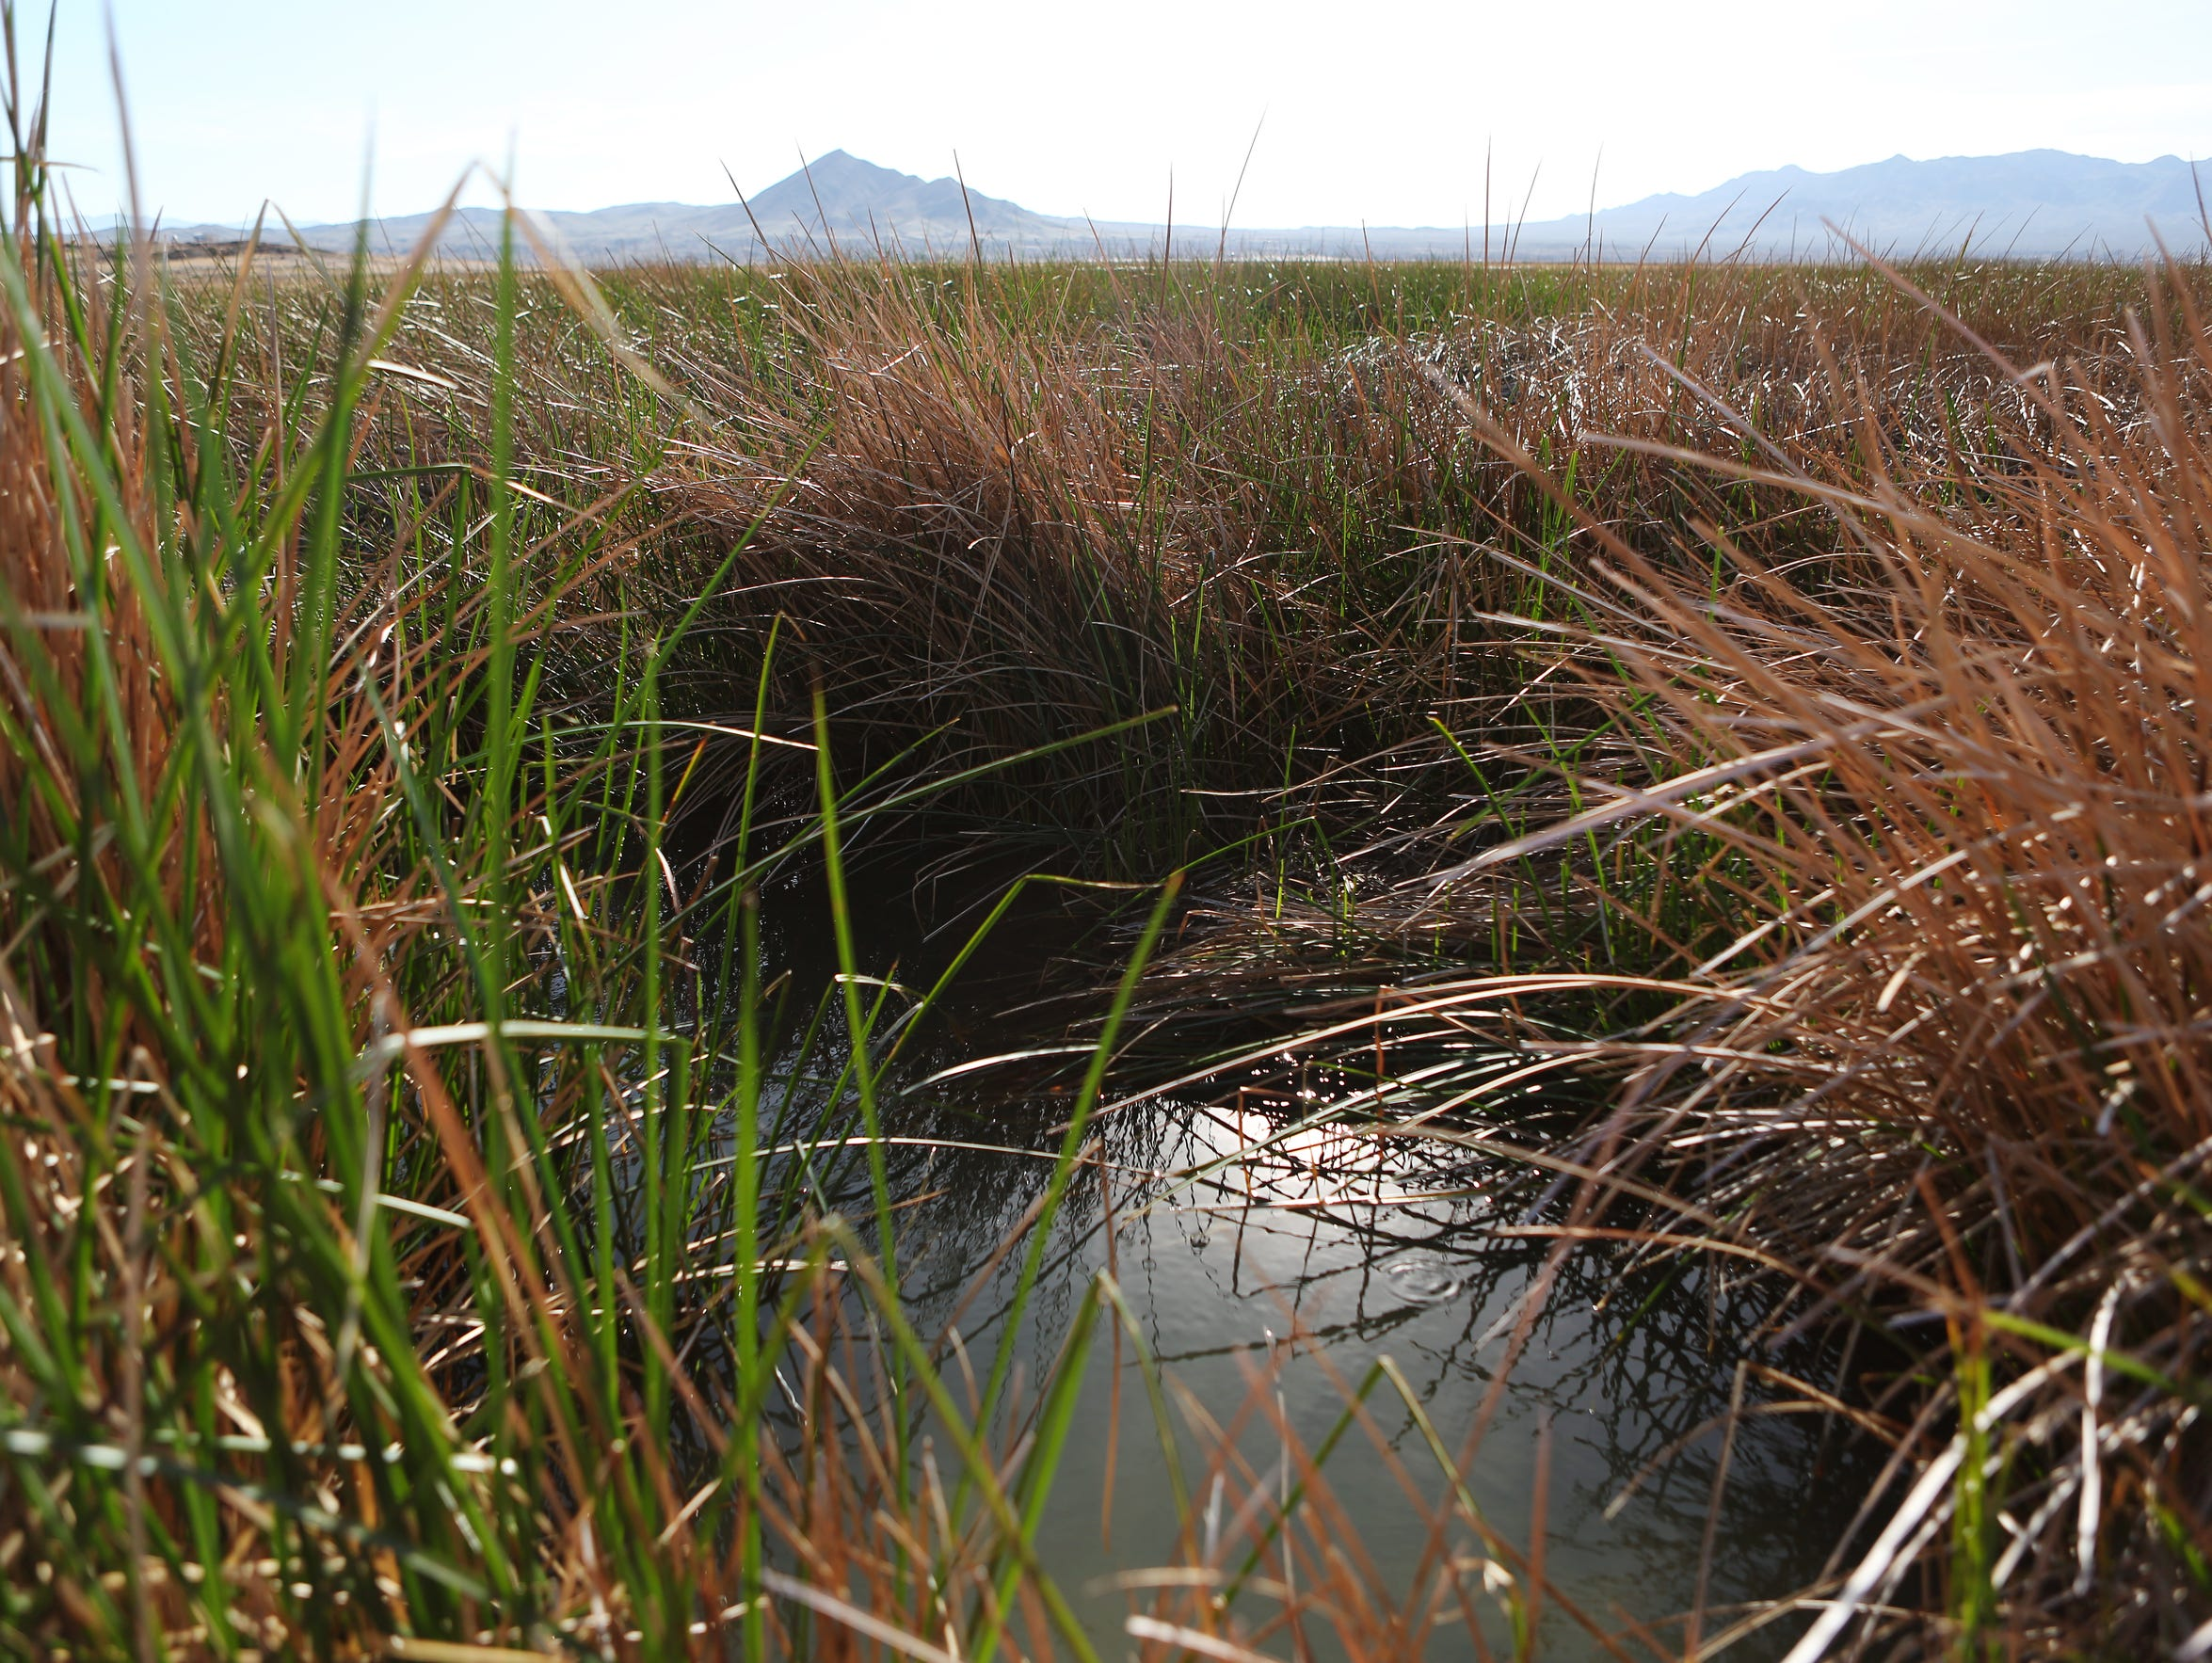 Tecopa Marsh is one of the remaining habitats of the